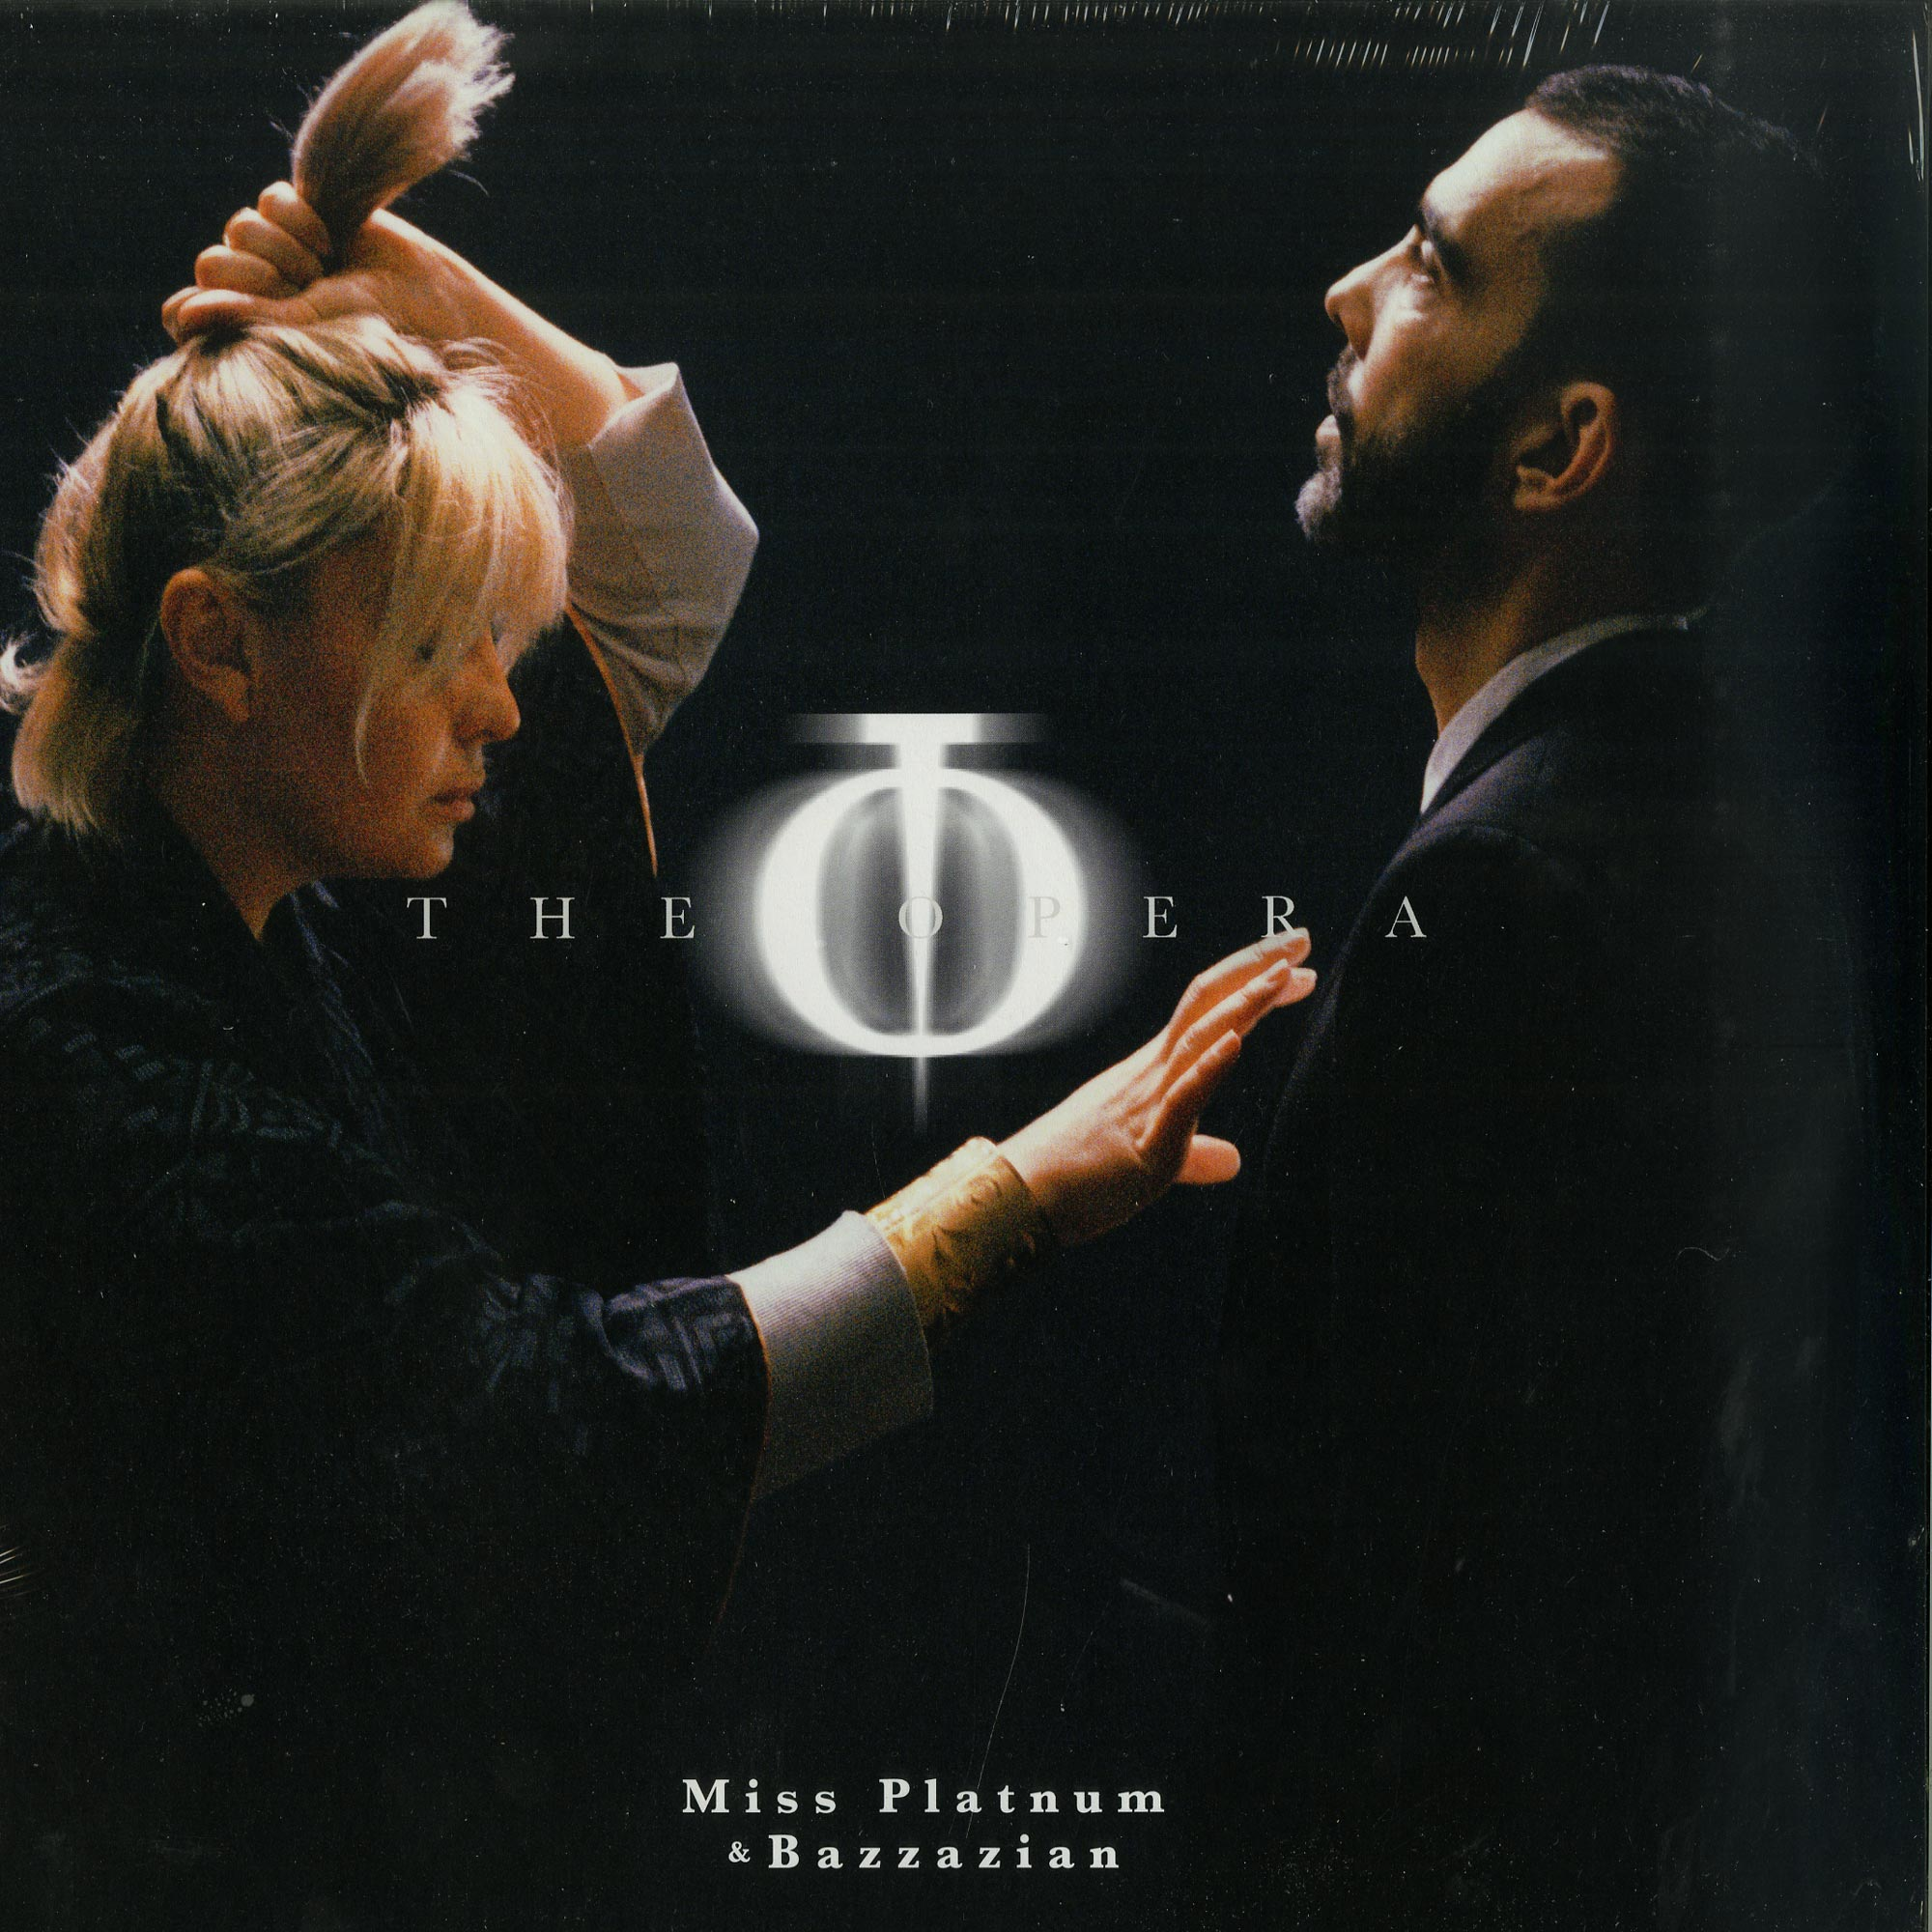 Miss Platnum & Bazzazian - THE OPERA